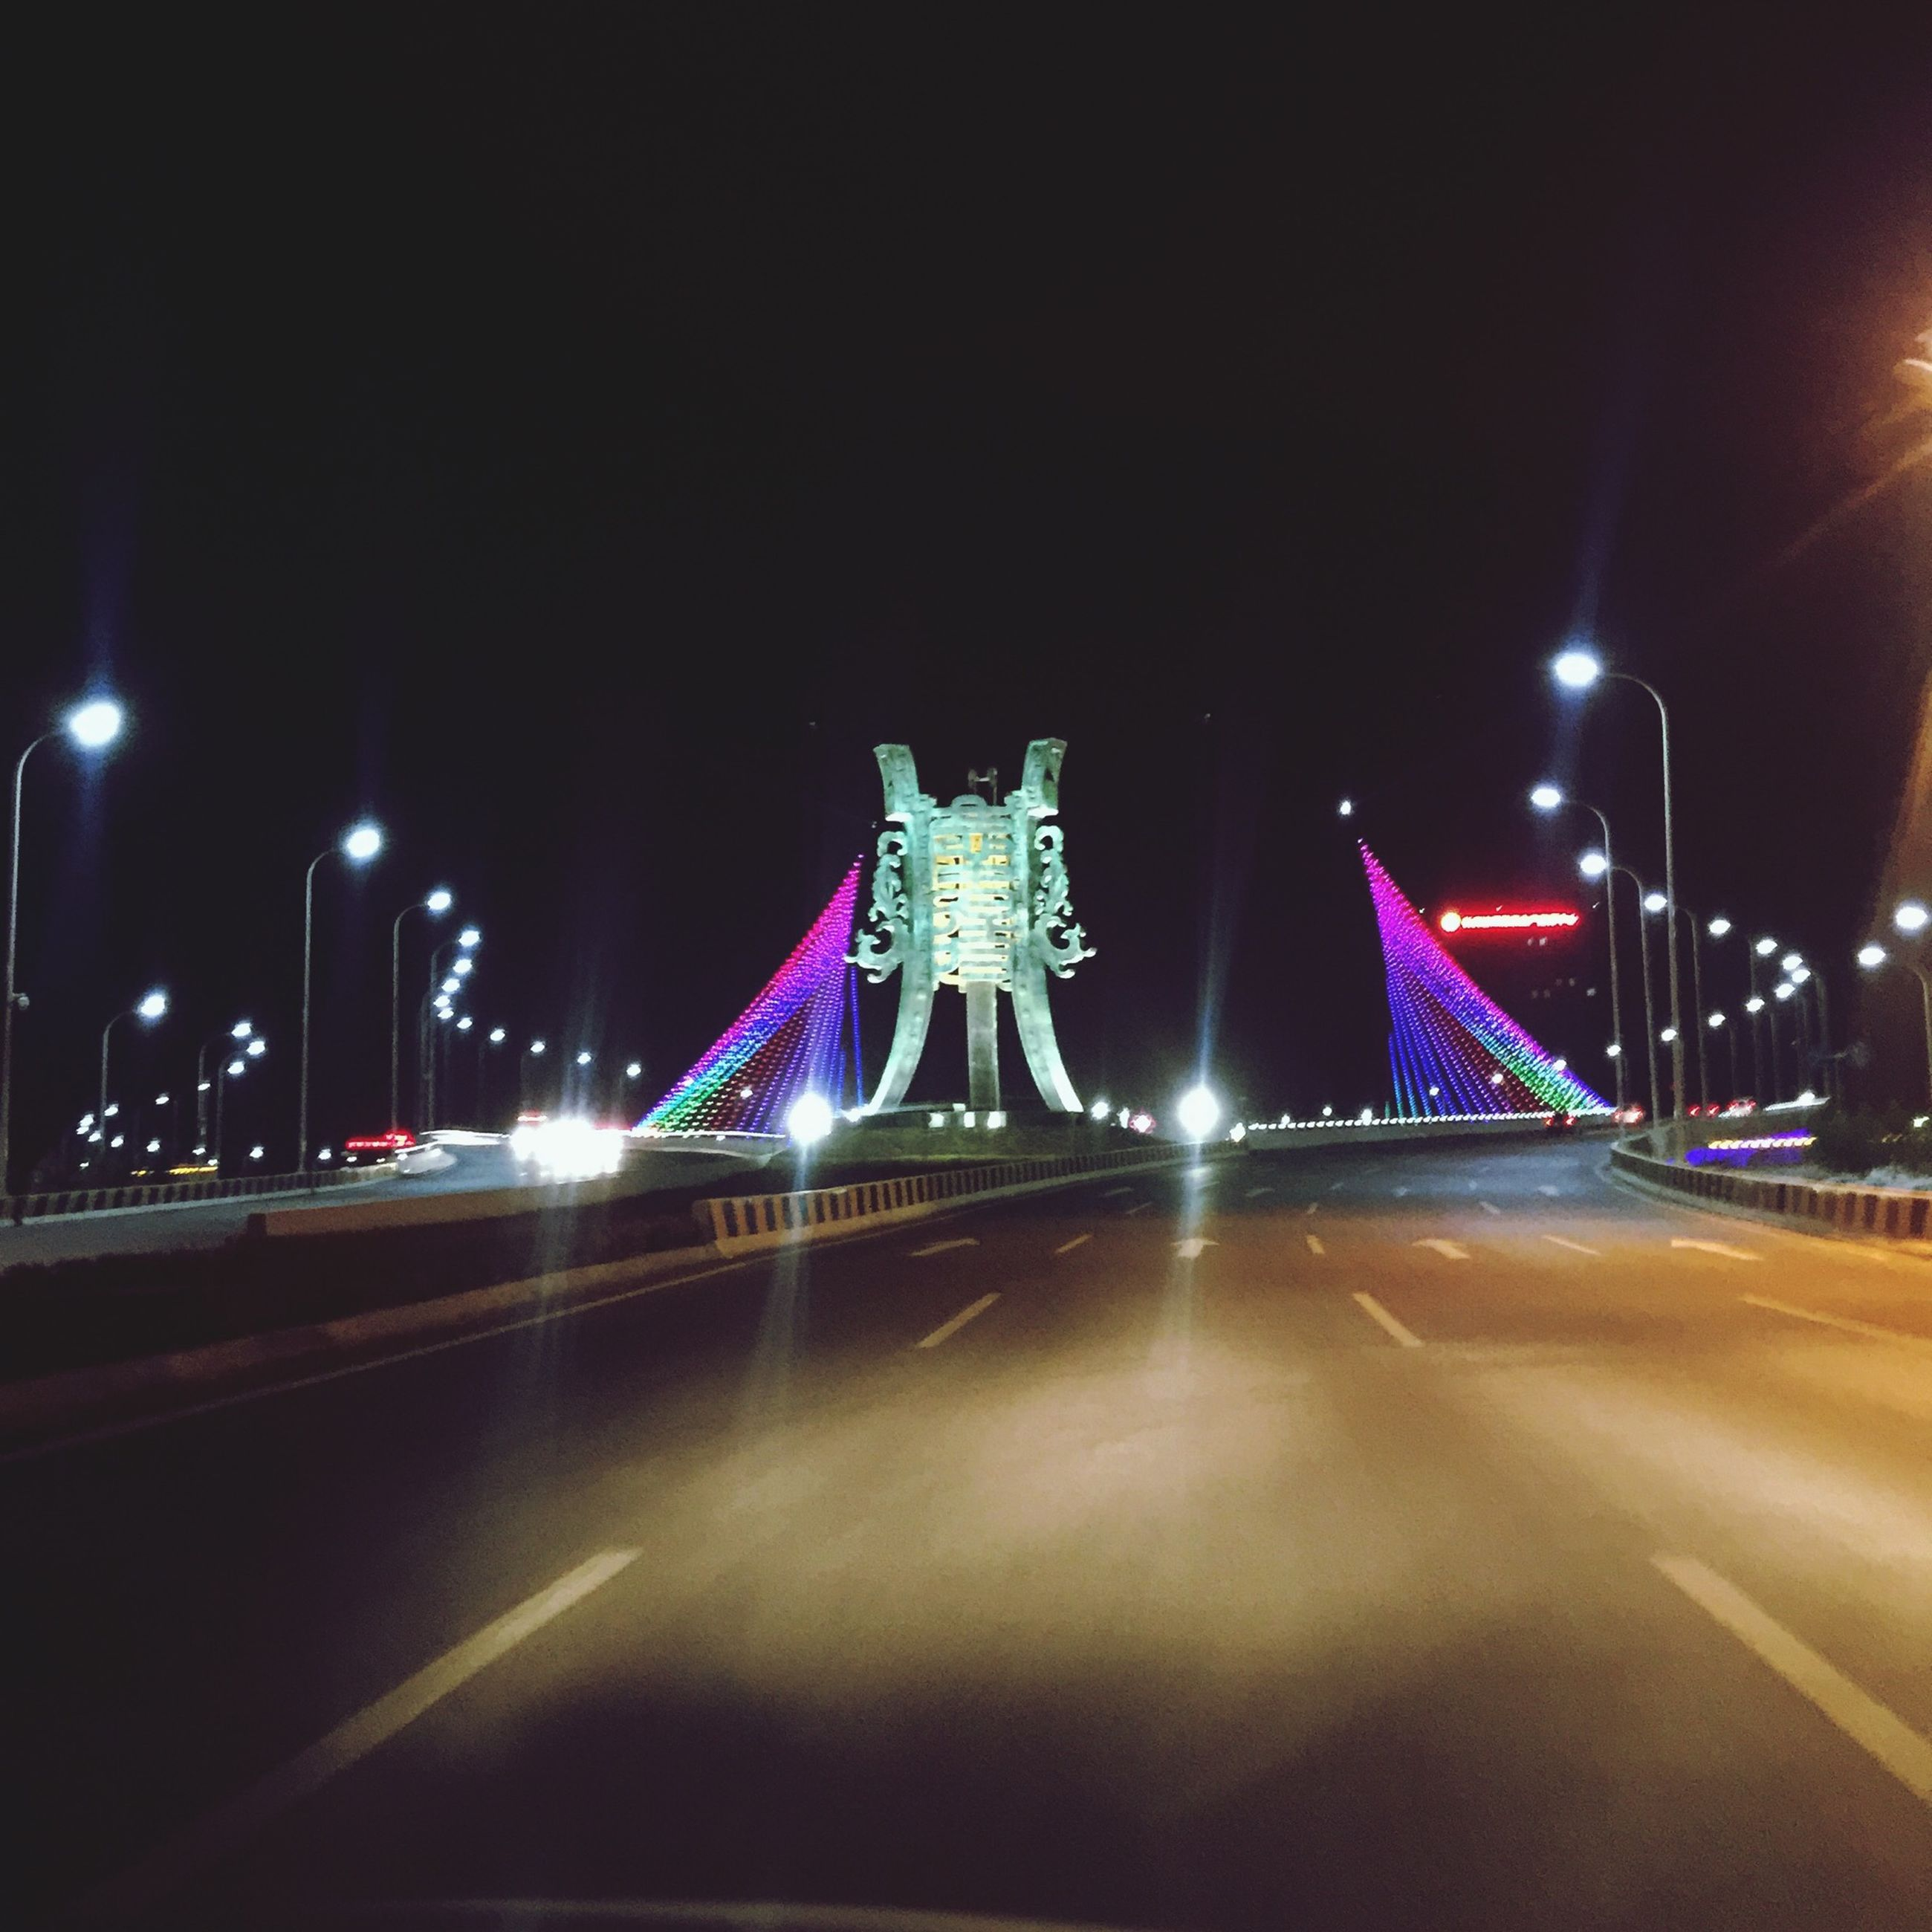 illuminated, night, transportation, the way forward, road, street light, copy space, clear sky, built structure, architecture, lighting equipment, street, road marking, city, long exposure, light trail, diminishing perspective, building exterior, bridge - man made structure, vanishing point